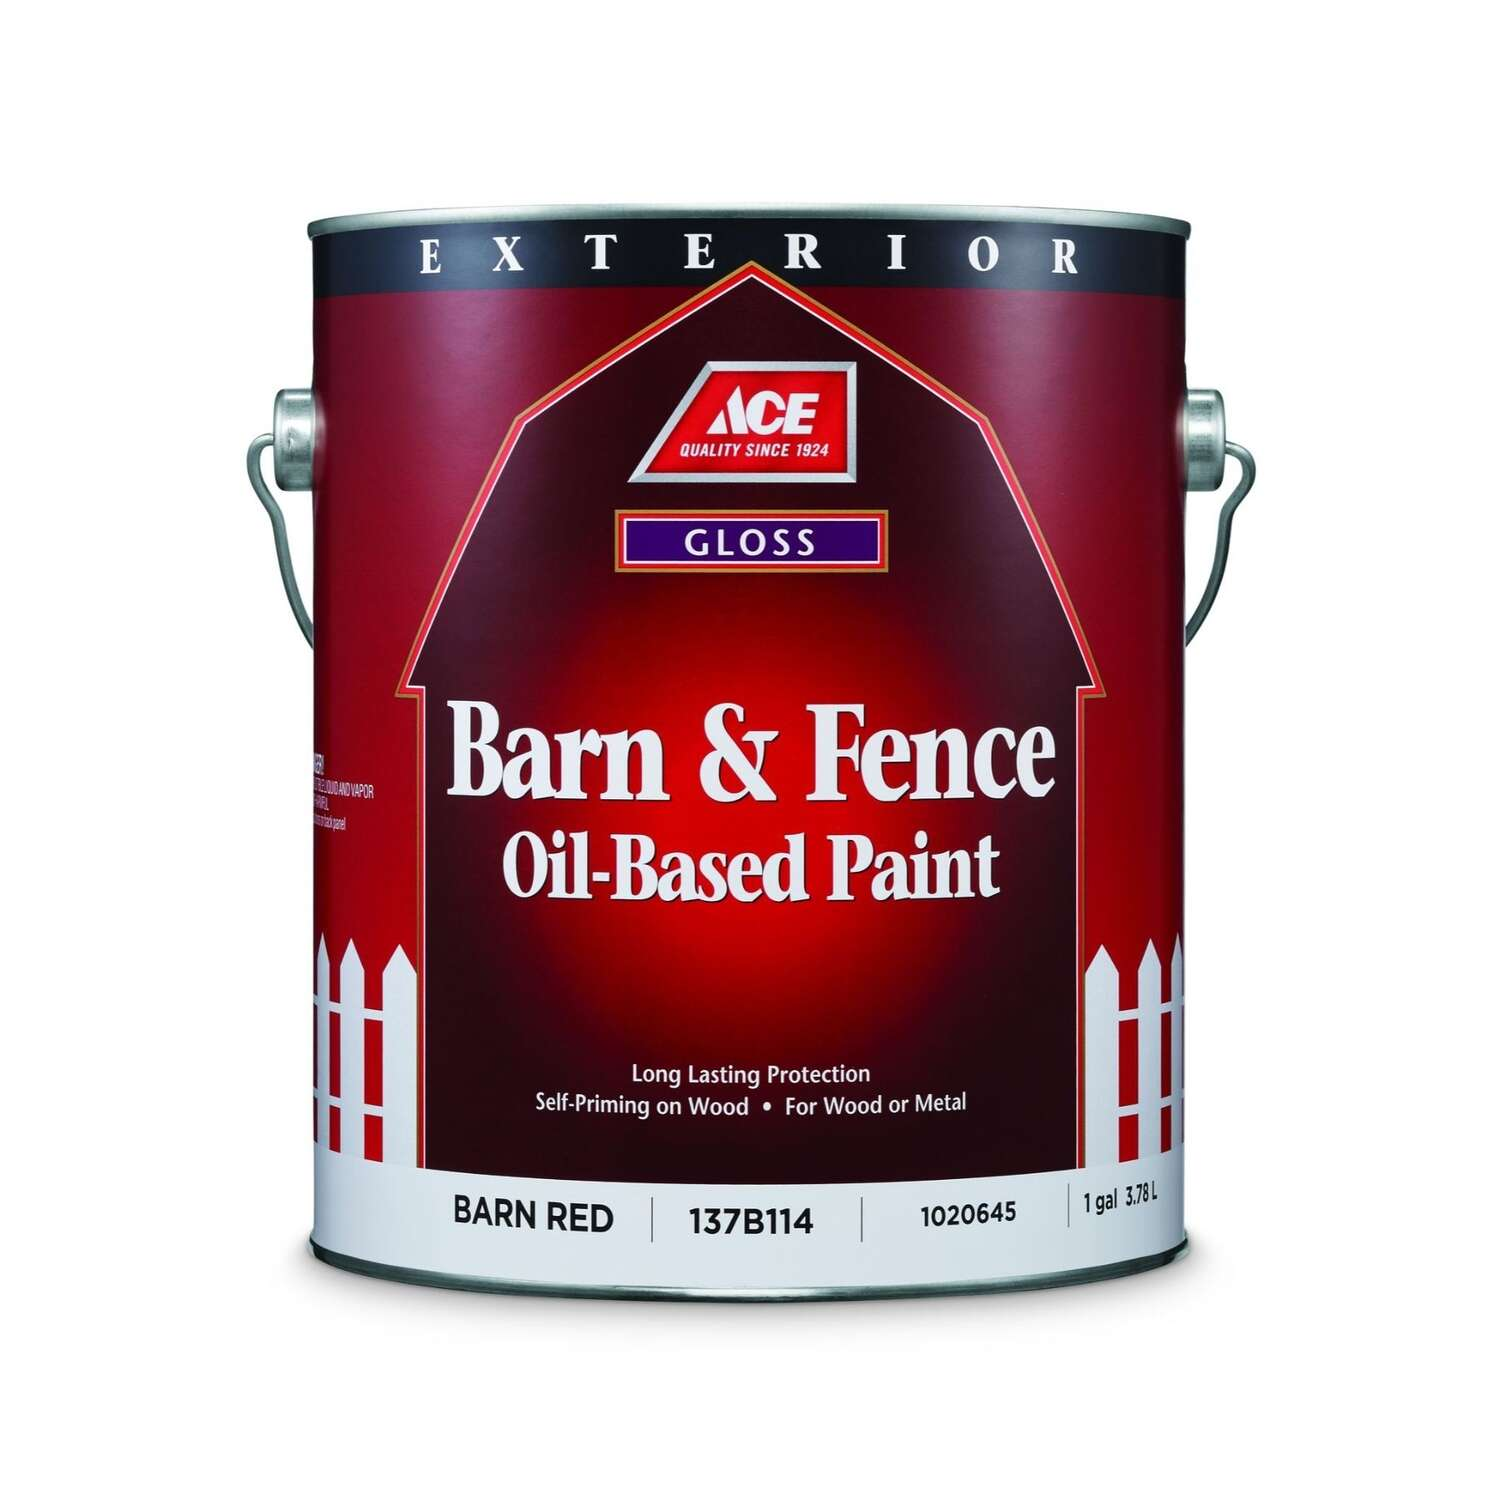 Ace  Gloss  Barn Red  Oil-Based  Barn and Fence Paint  Exterior  1 gal.